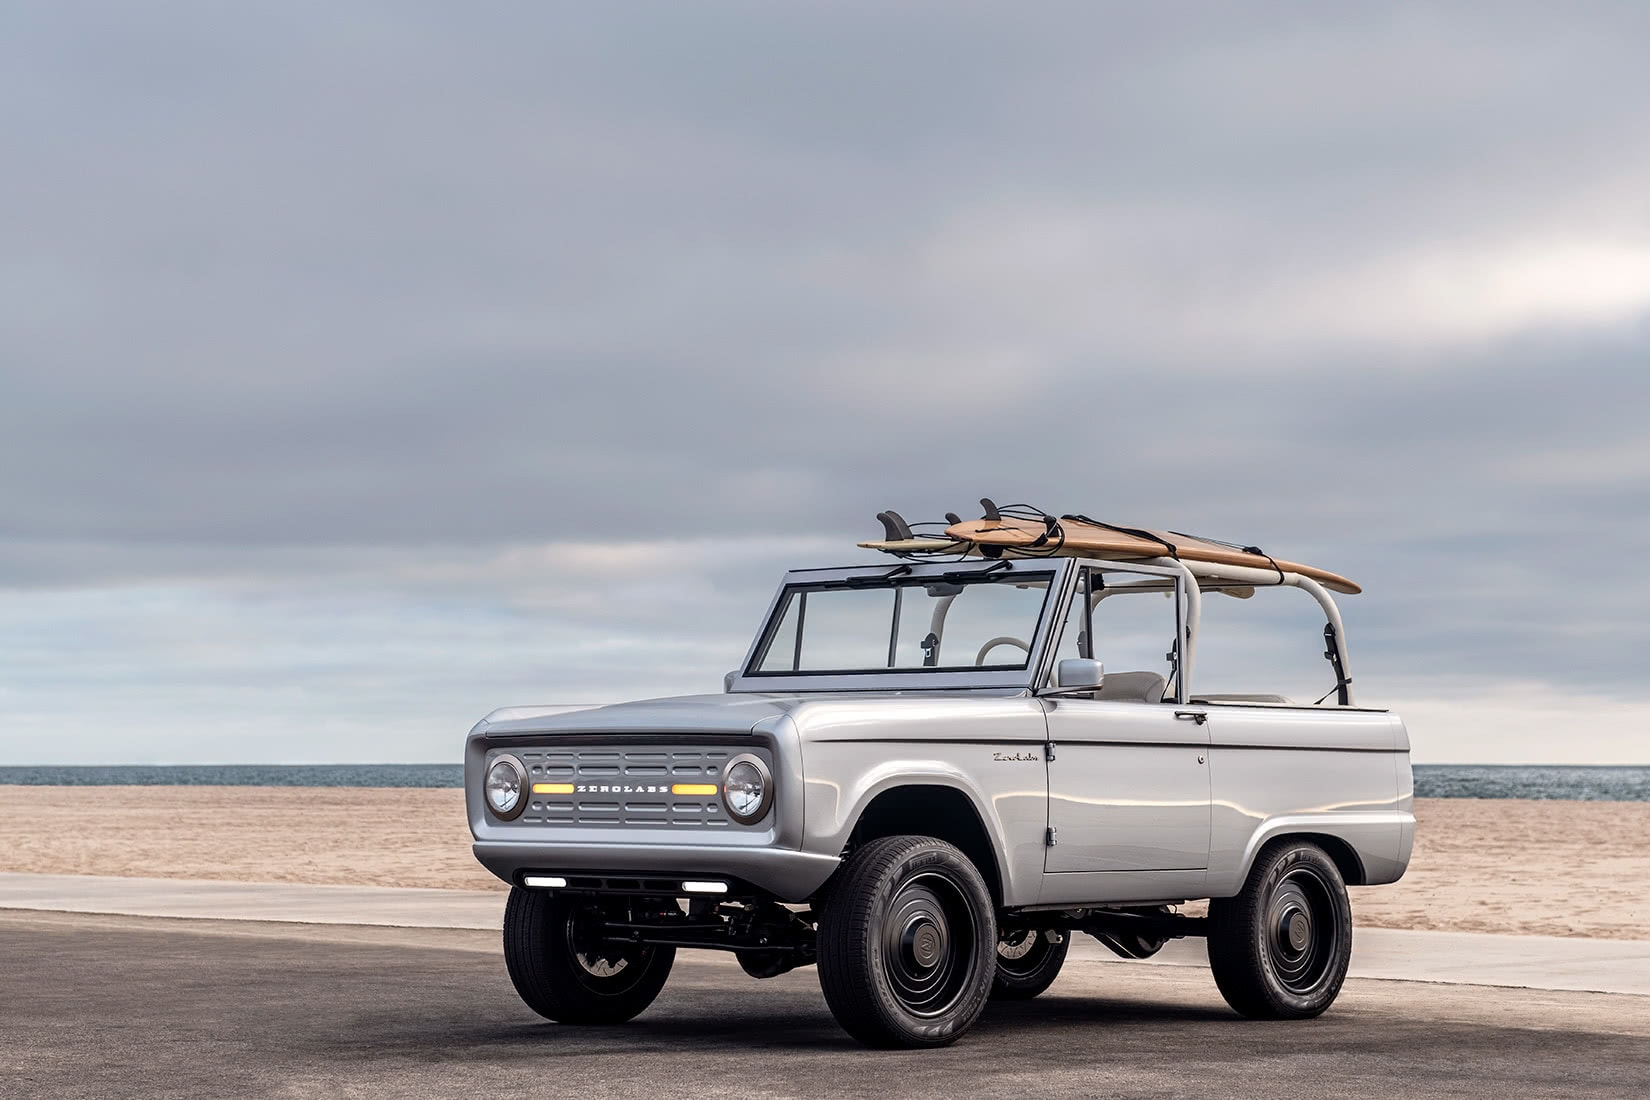 zero labs electric ford bronco road test - Luxe Digital